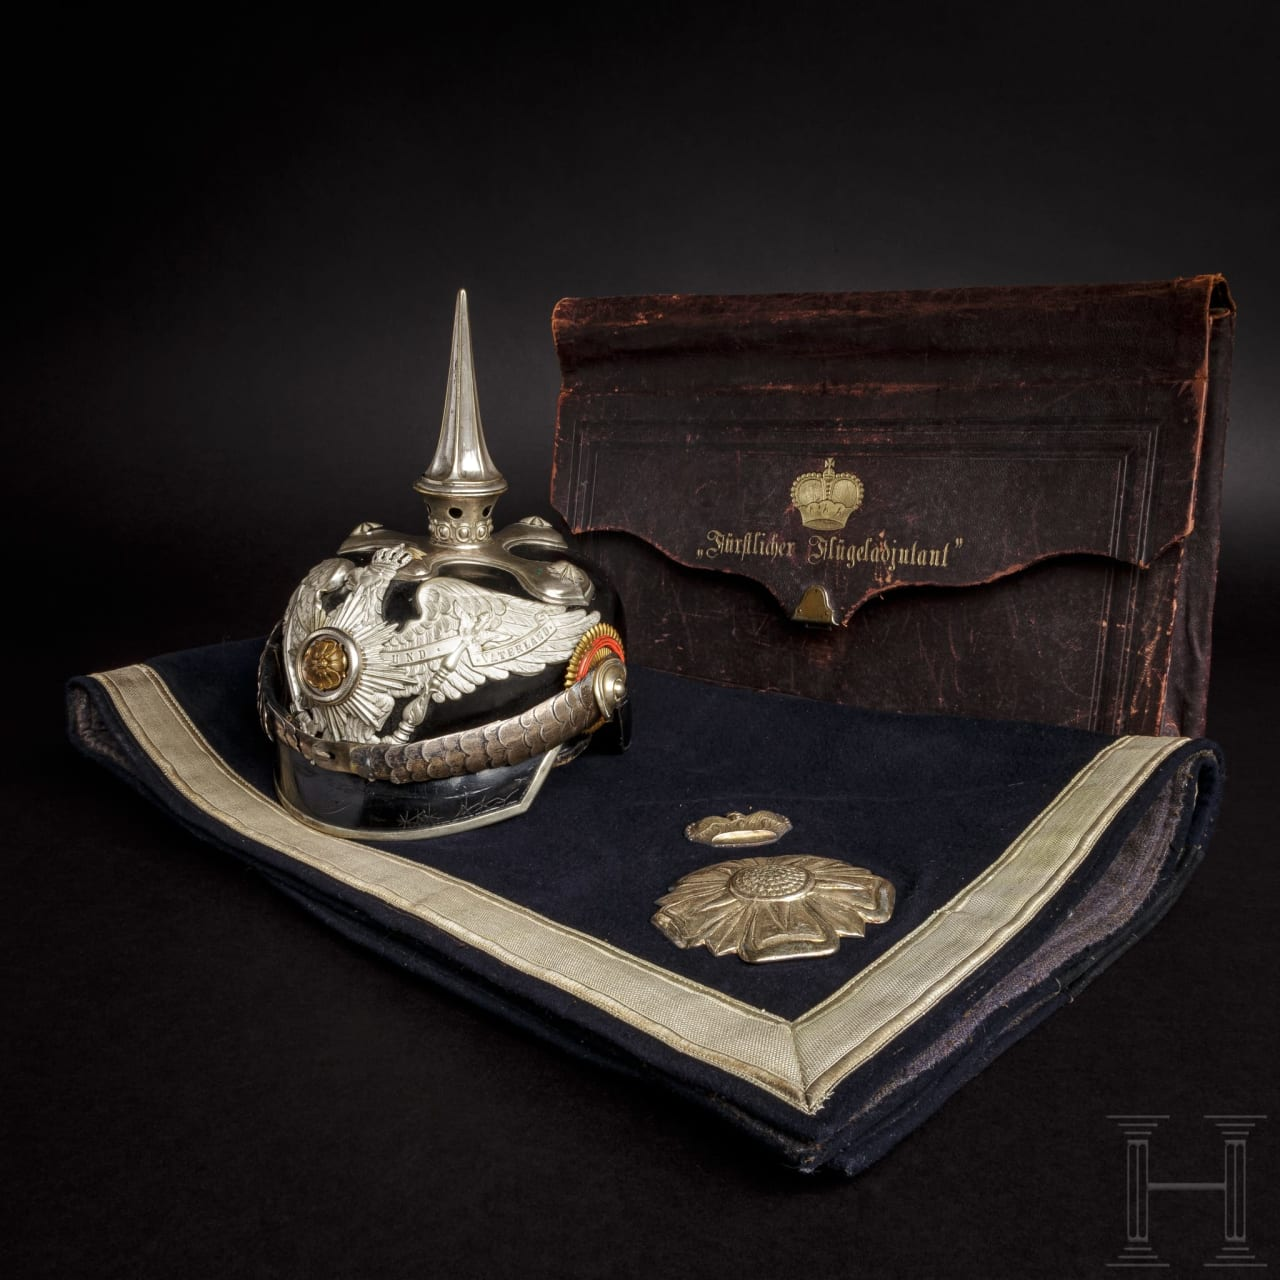 A helmet, a caparison and a dispatch case belonging to the aide-de-camp of Prince of Lippe